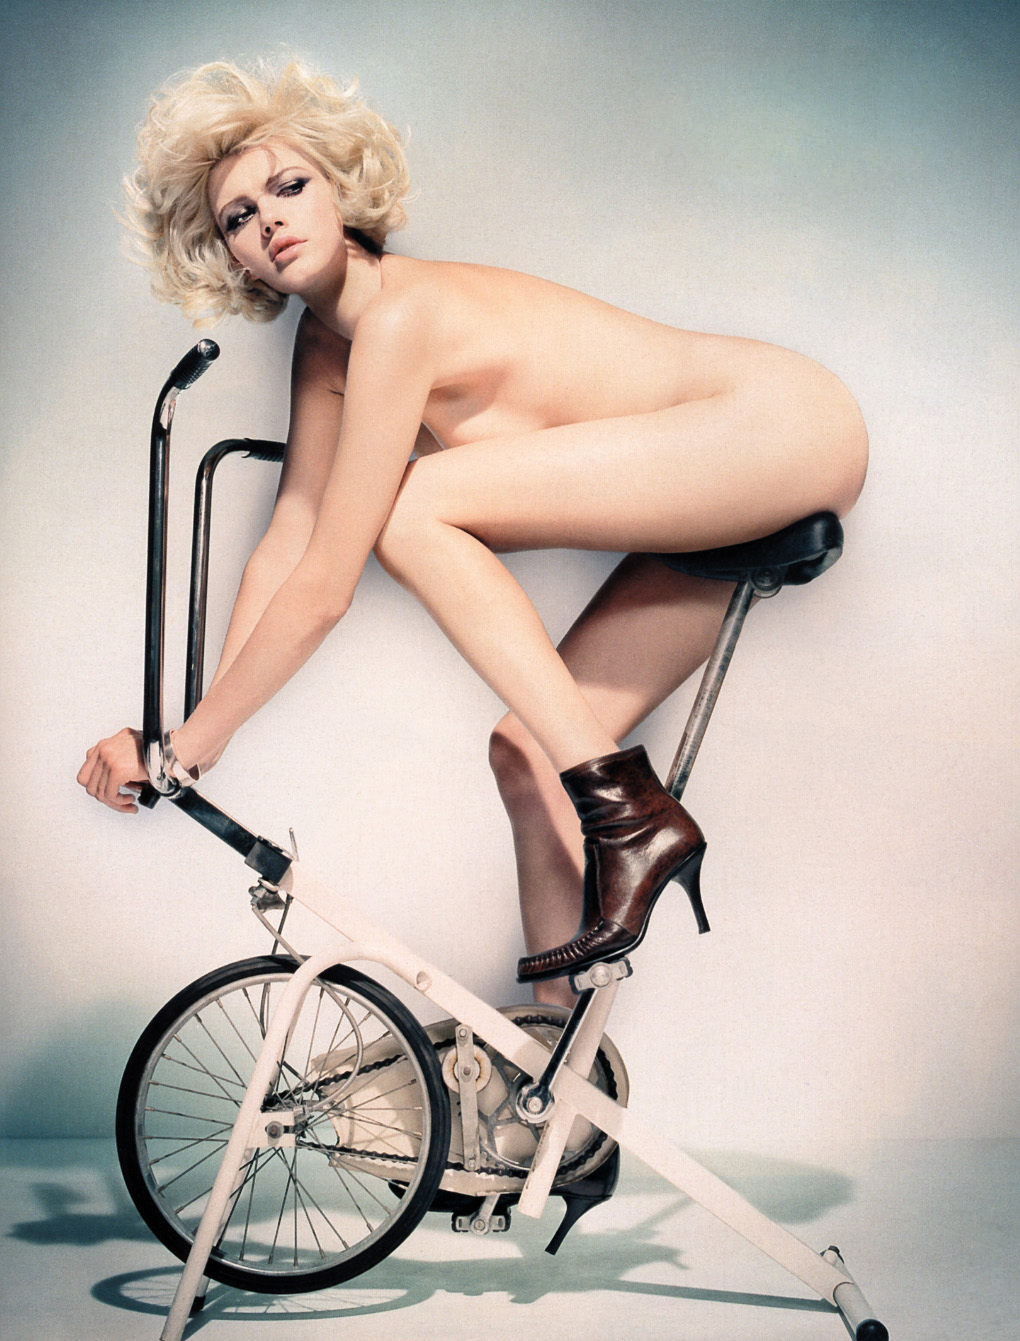 Question Naked on exercise bike were